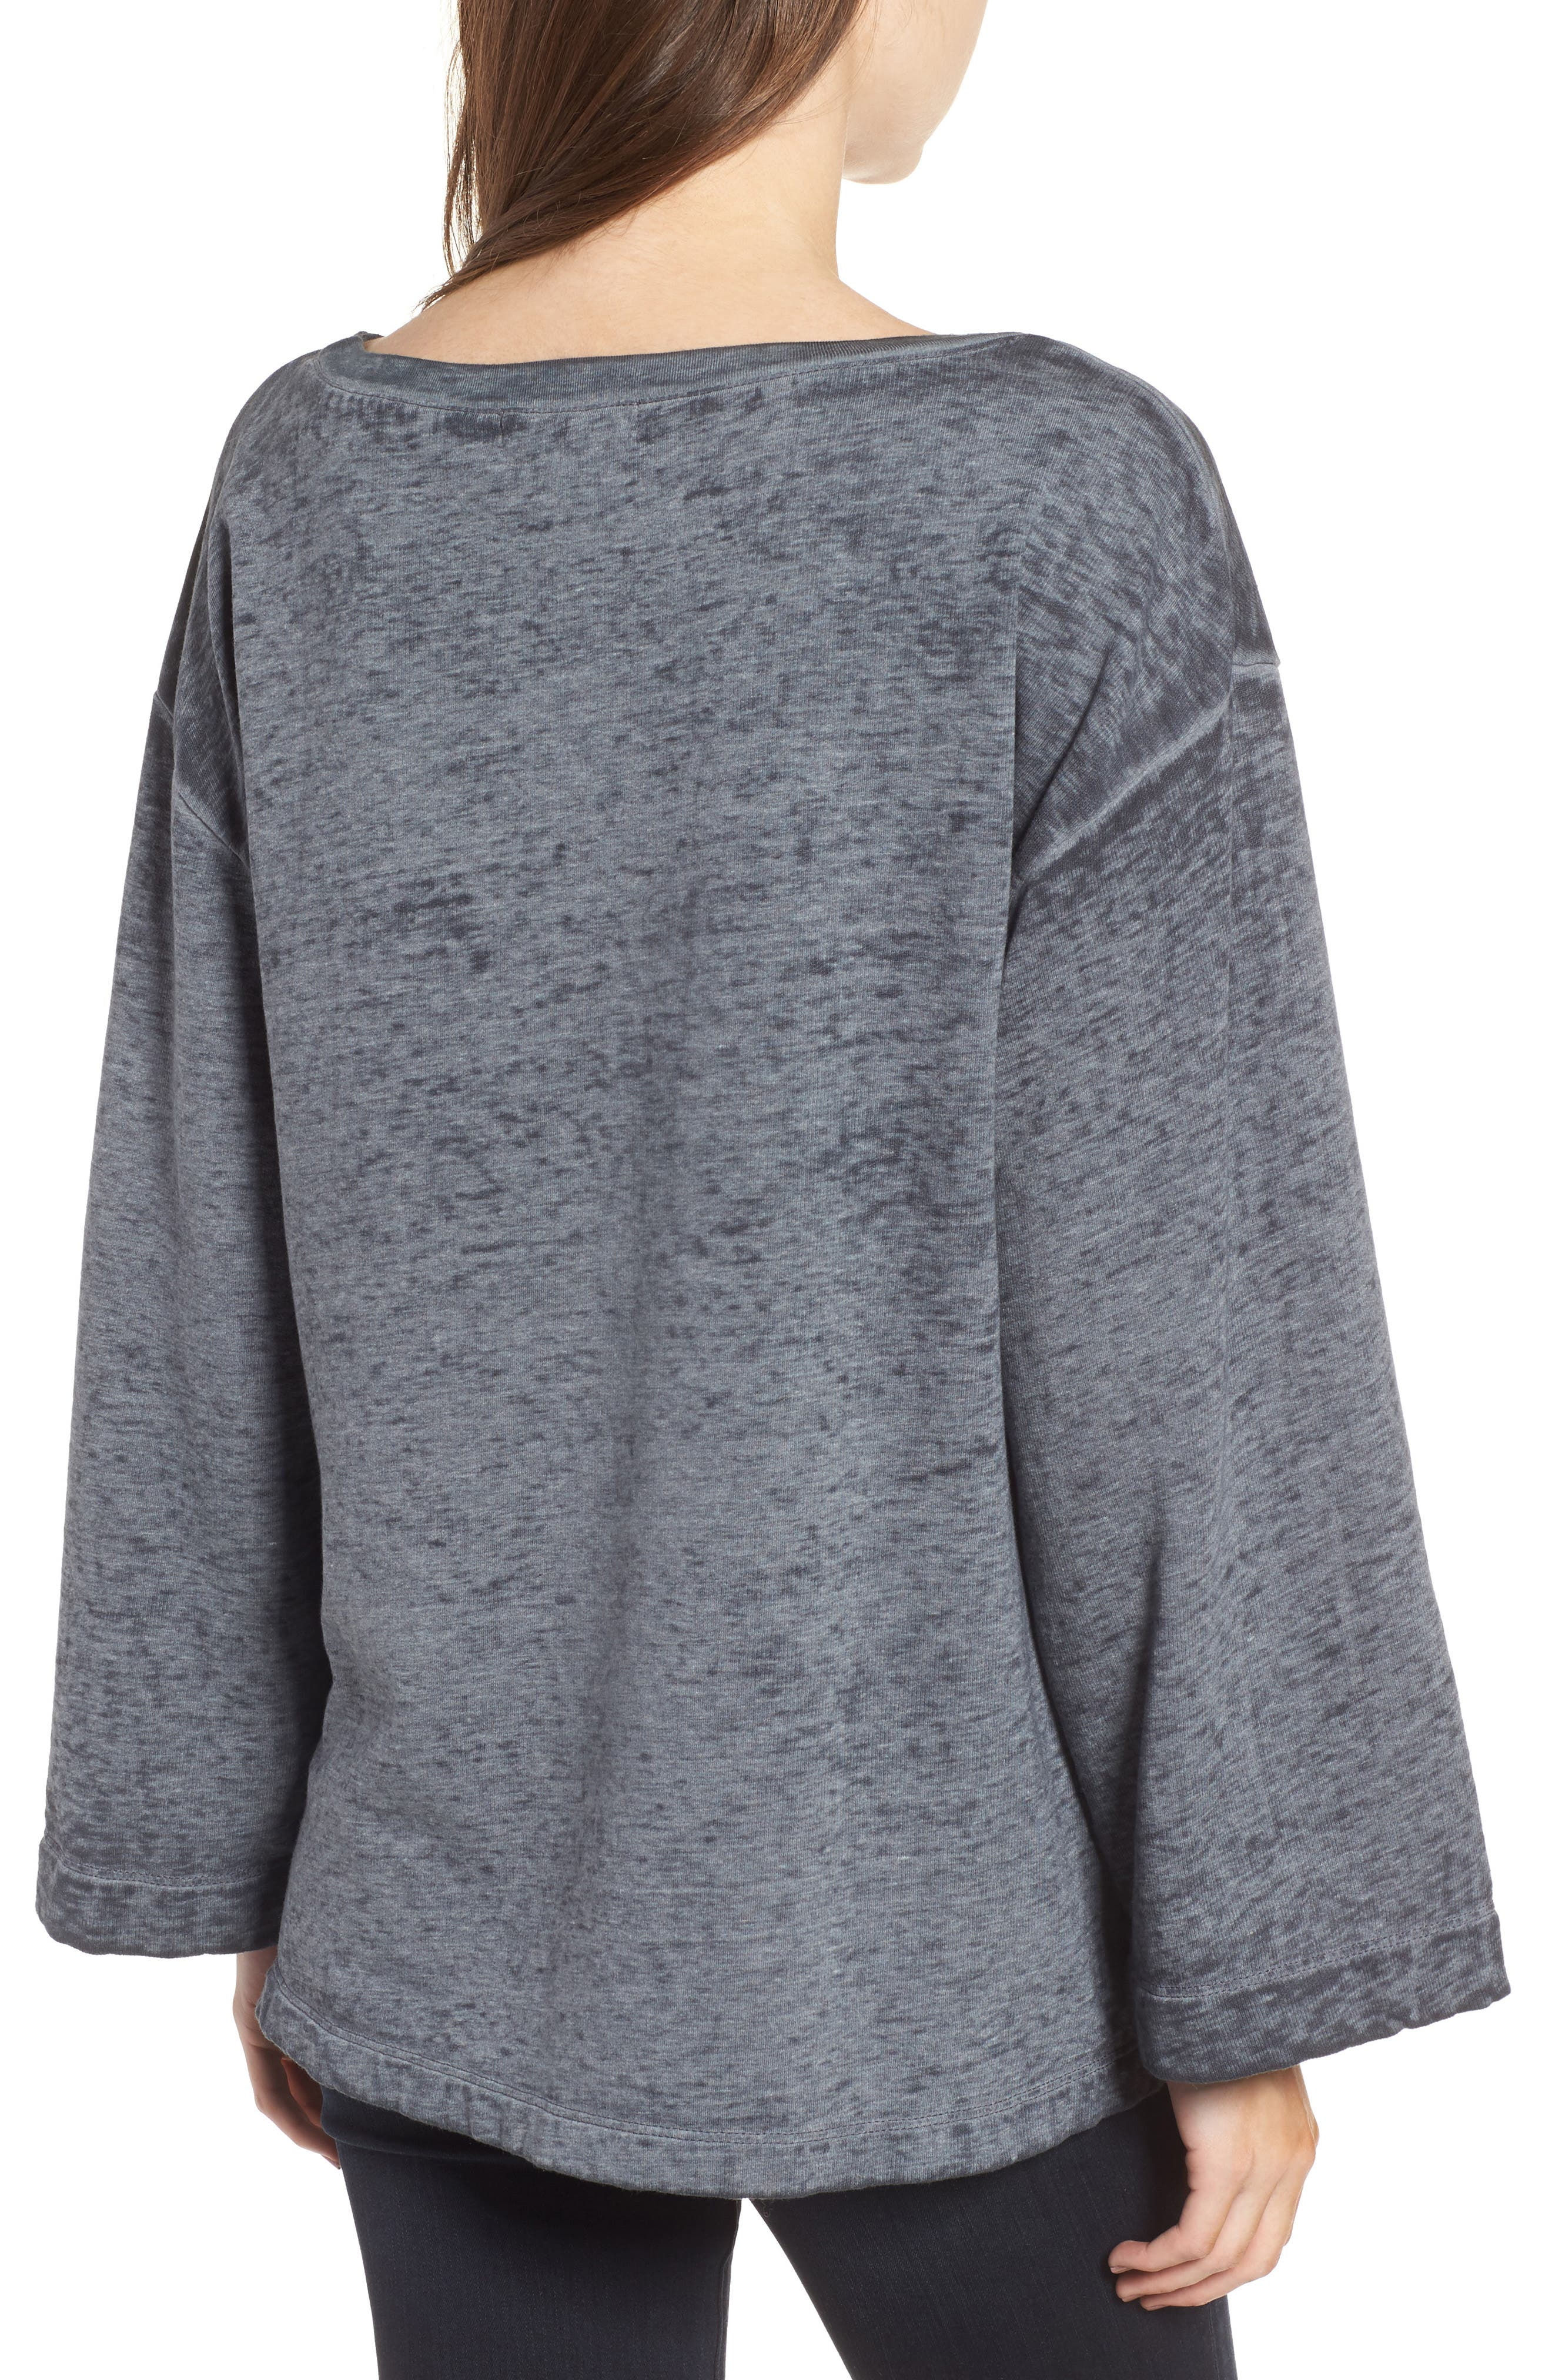 Bell Sleeve Sweatshirt,                             Alternate thumbnail 2, color,                             020